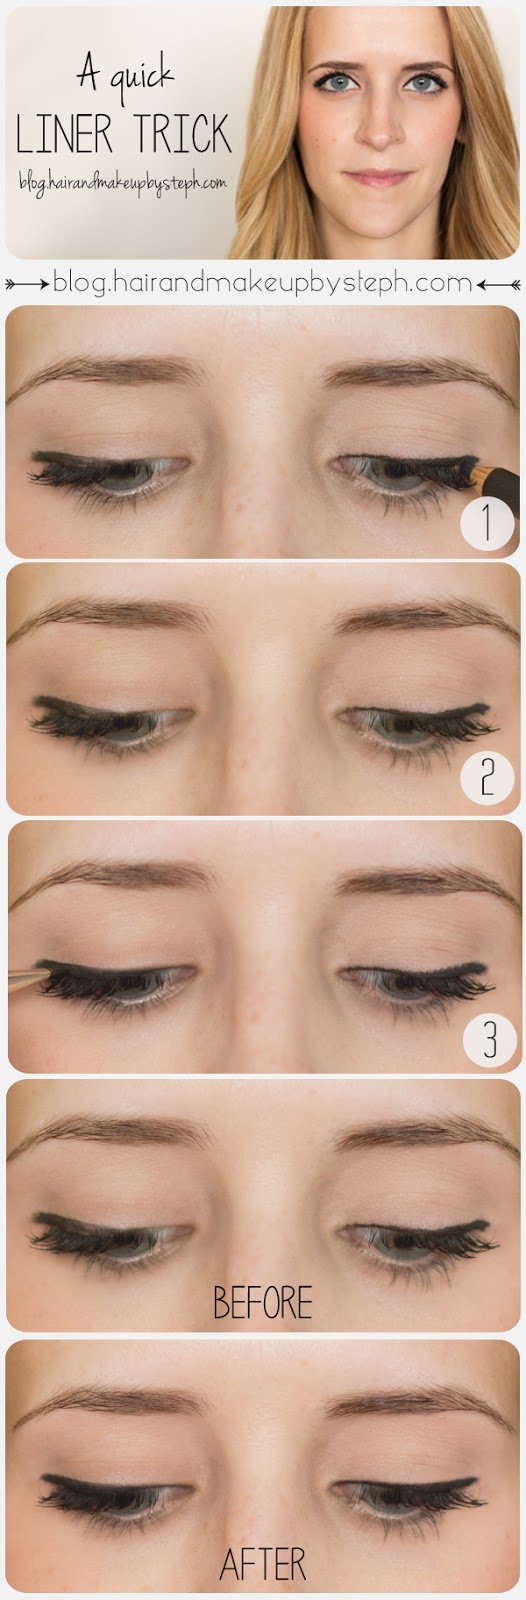 Useful Makeup Tutorials for Sophisticated Looks: Liner Tricks